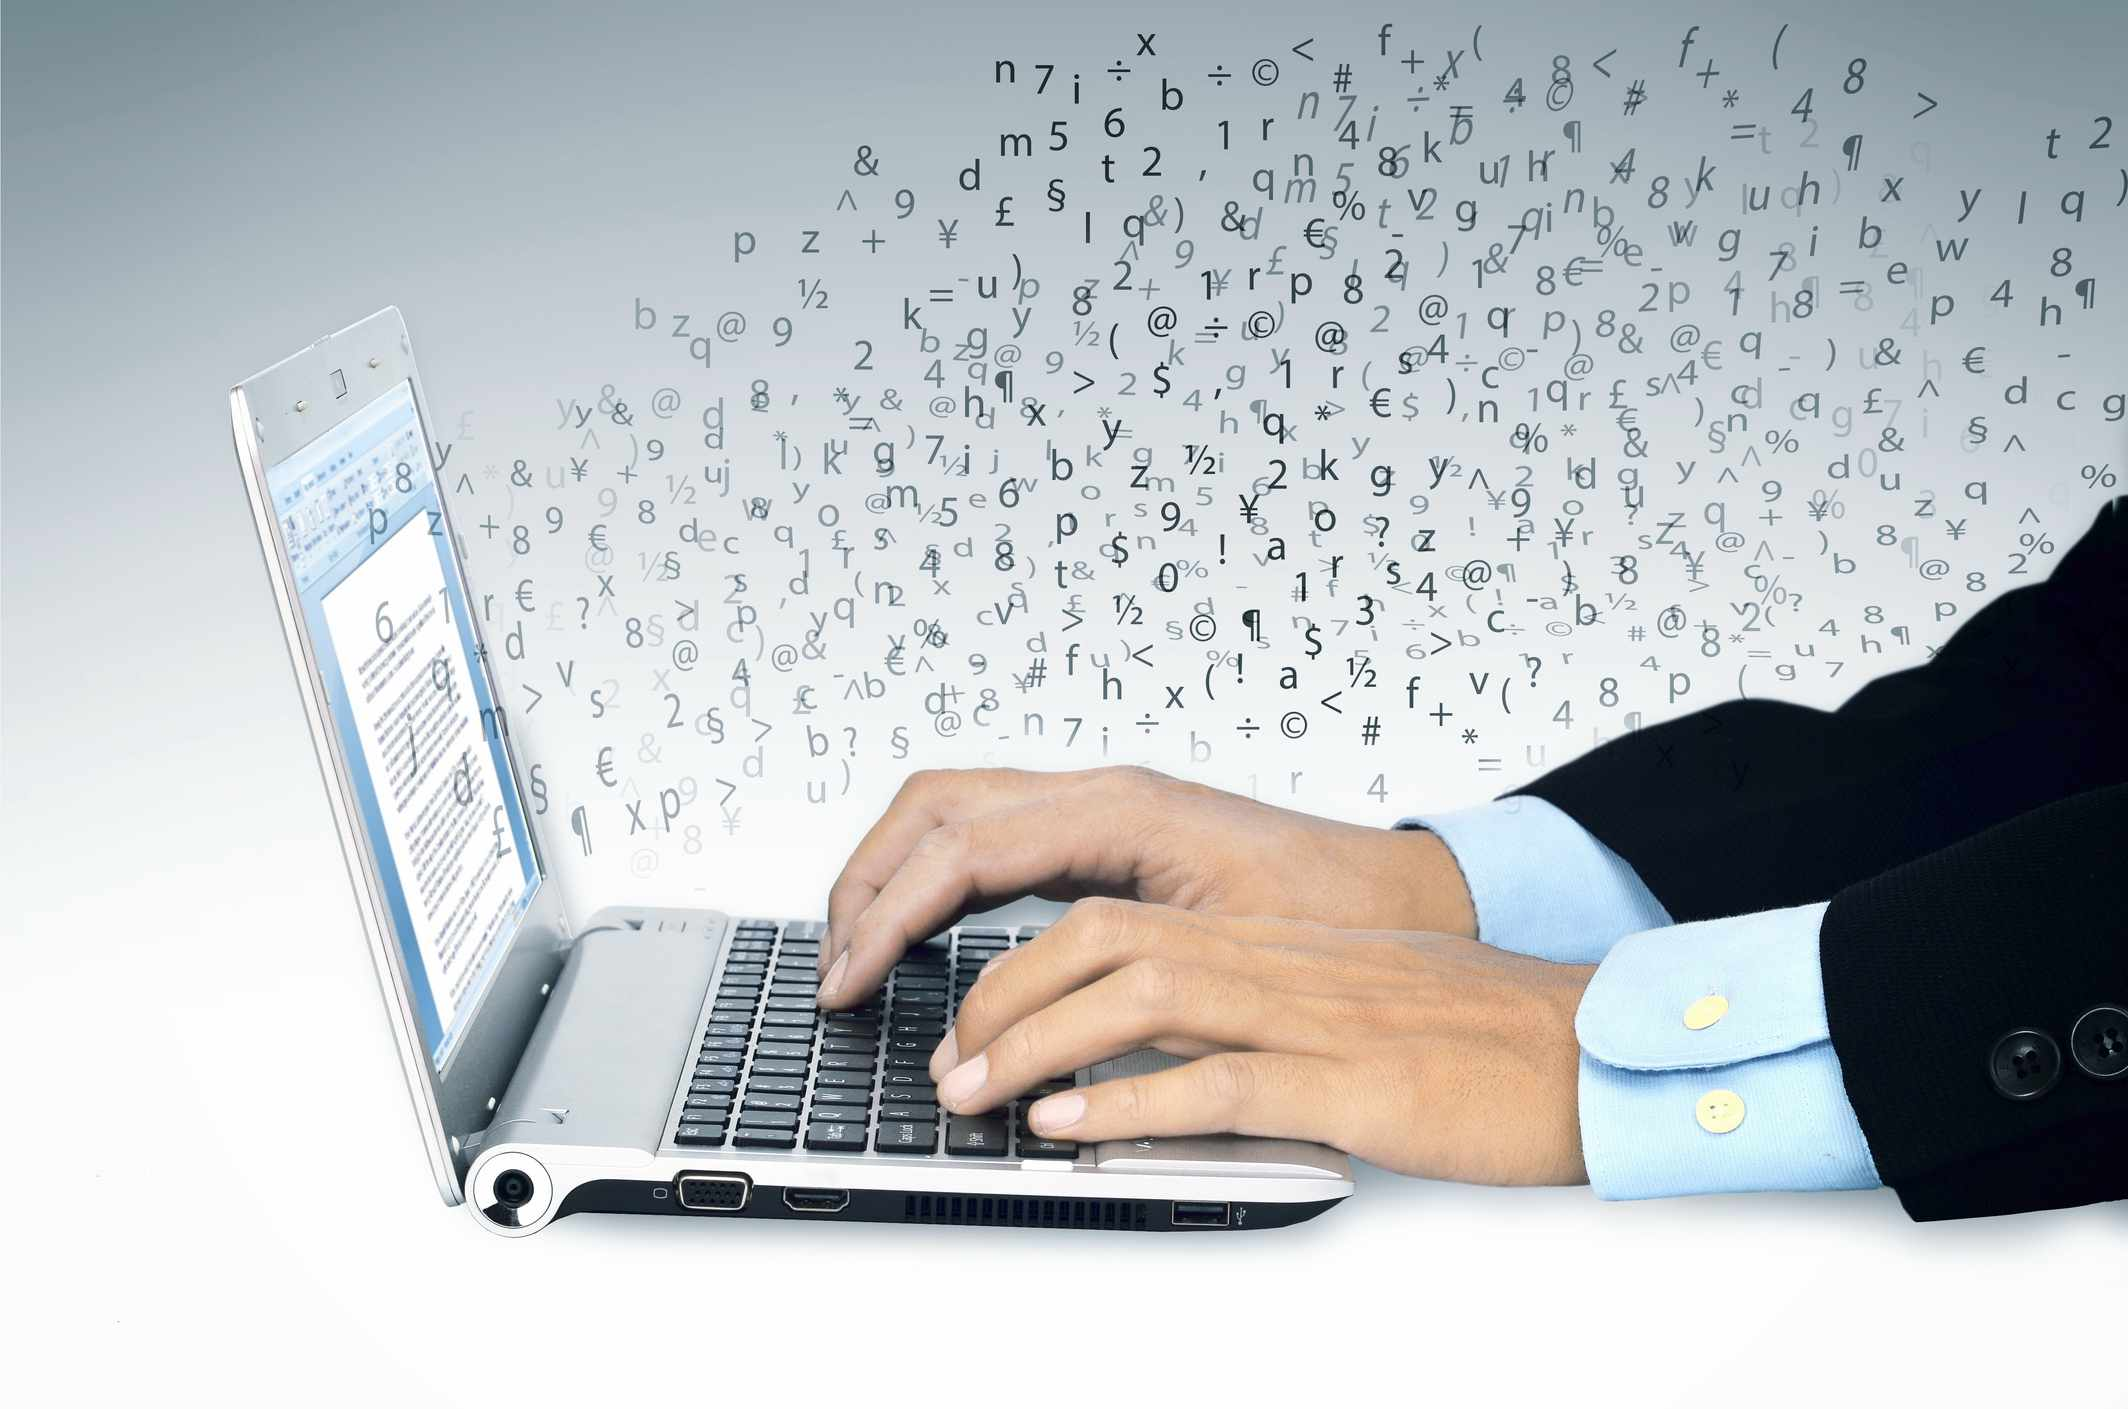 Man's hands typing on laptop, using a word processing software.